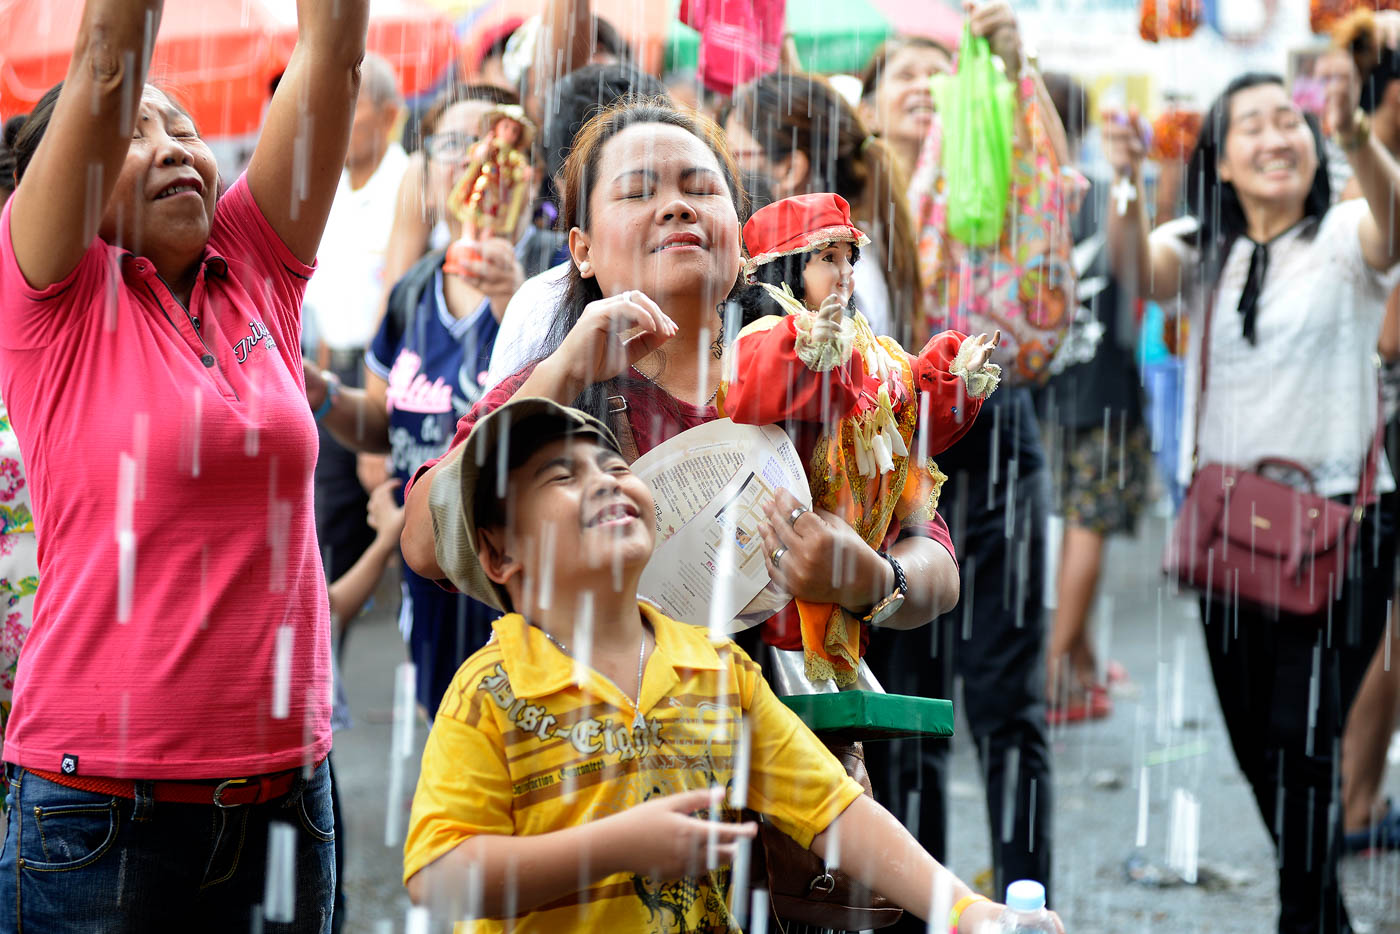 OUTPOURING OF BLESSINGS. Devotees get drenched in holy water as they have their Santo Niu00f1o images blessed outside the Santo Niu00f1o de Tondo Church in Manila on January 21, 2018. Photo by Maria Tan/Rappler